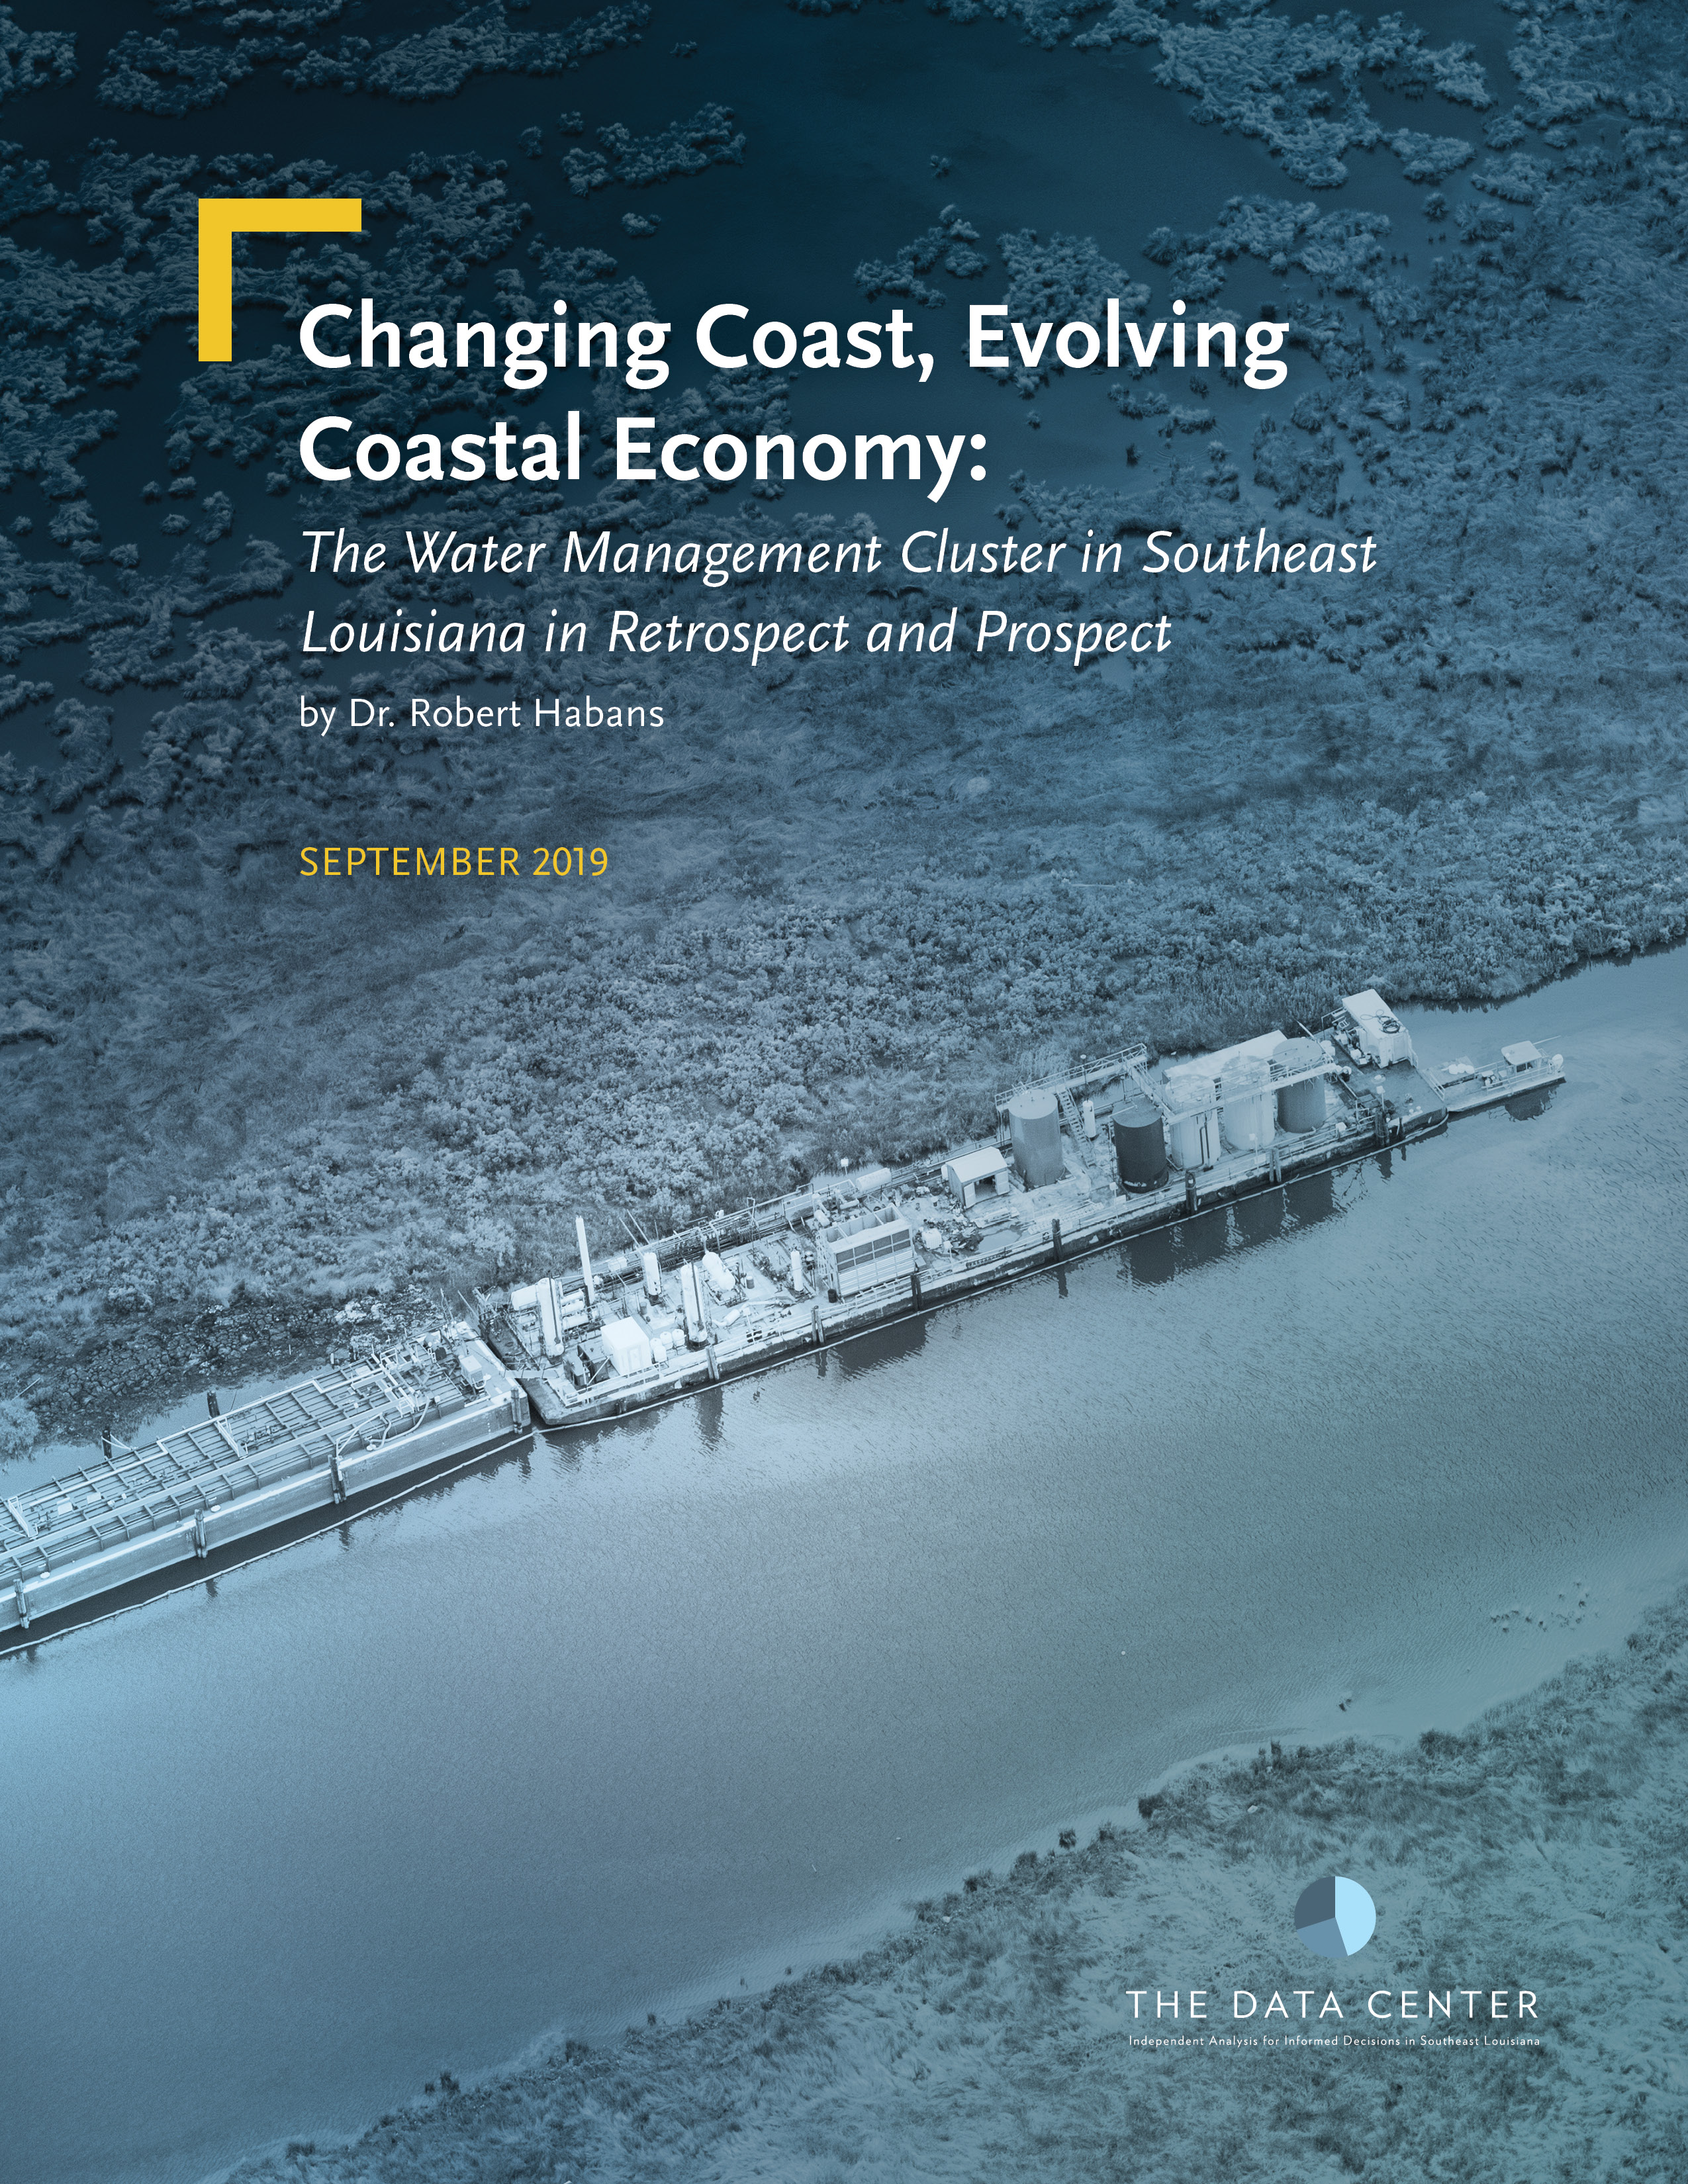 Changing coast, evolving coastal economy: The water management cluster in Southeast Louisiana in retrospect and prospect